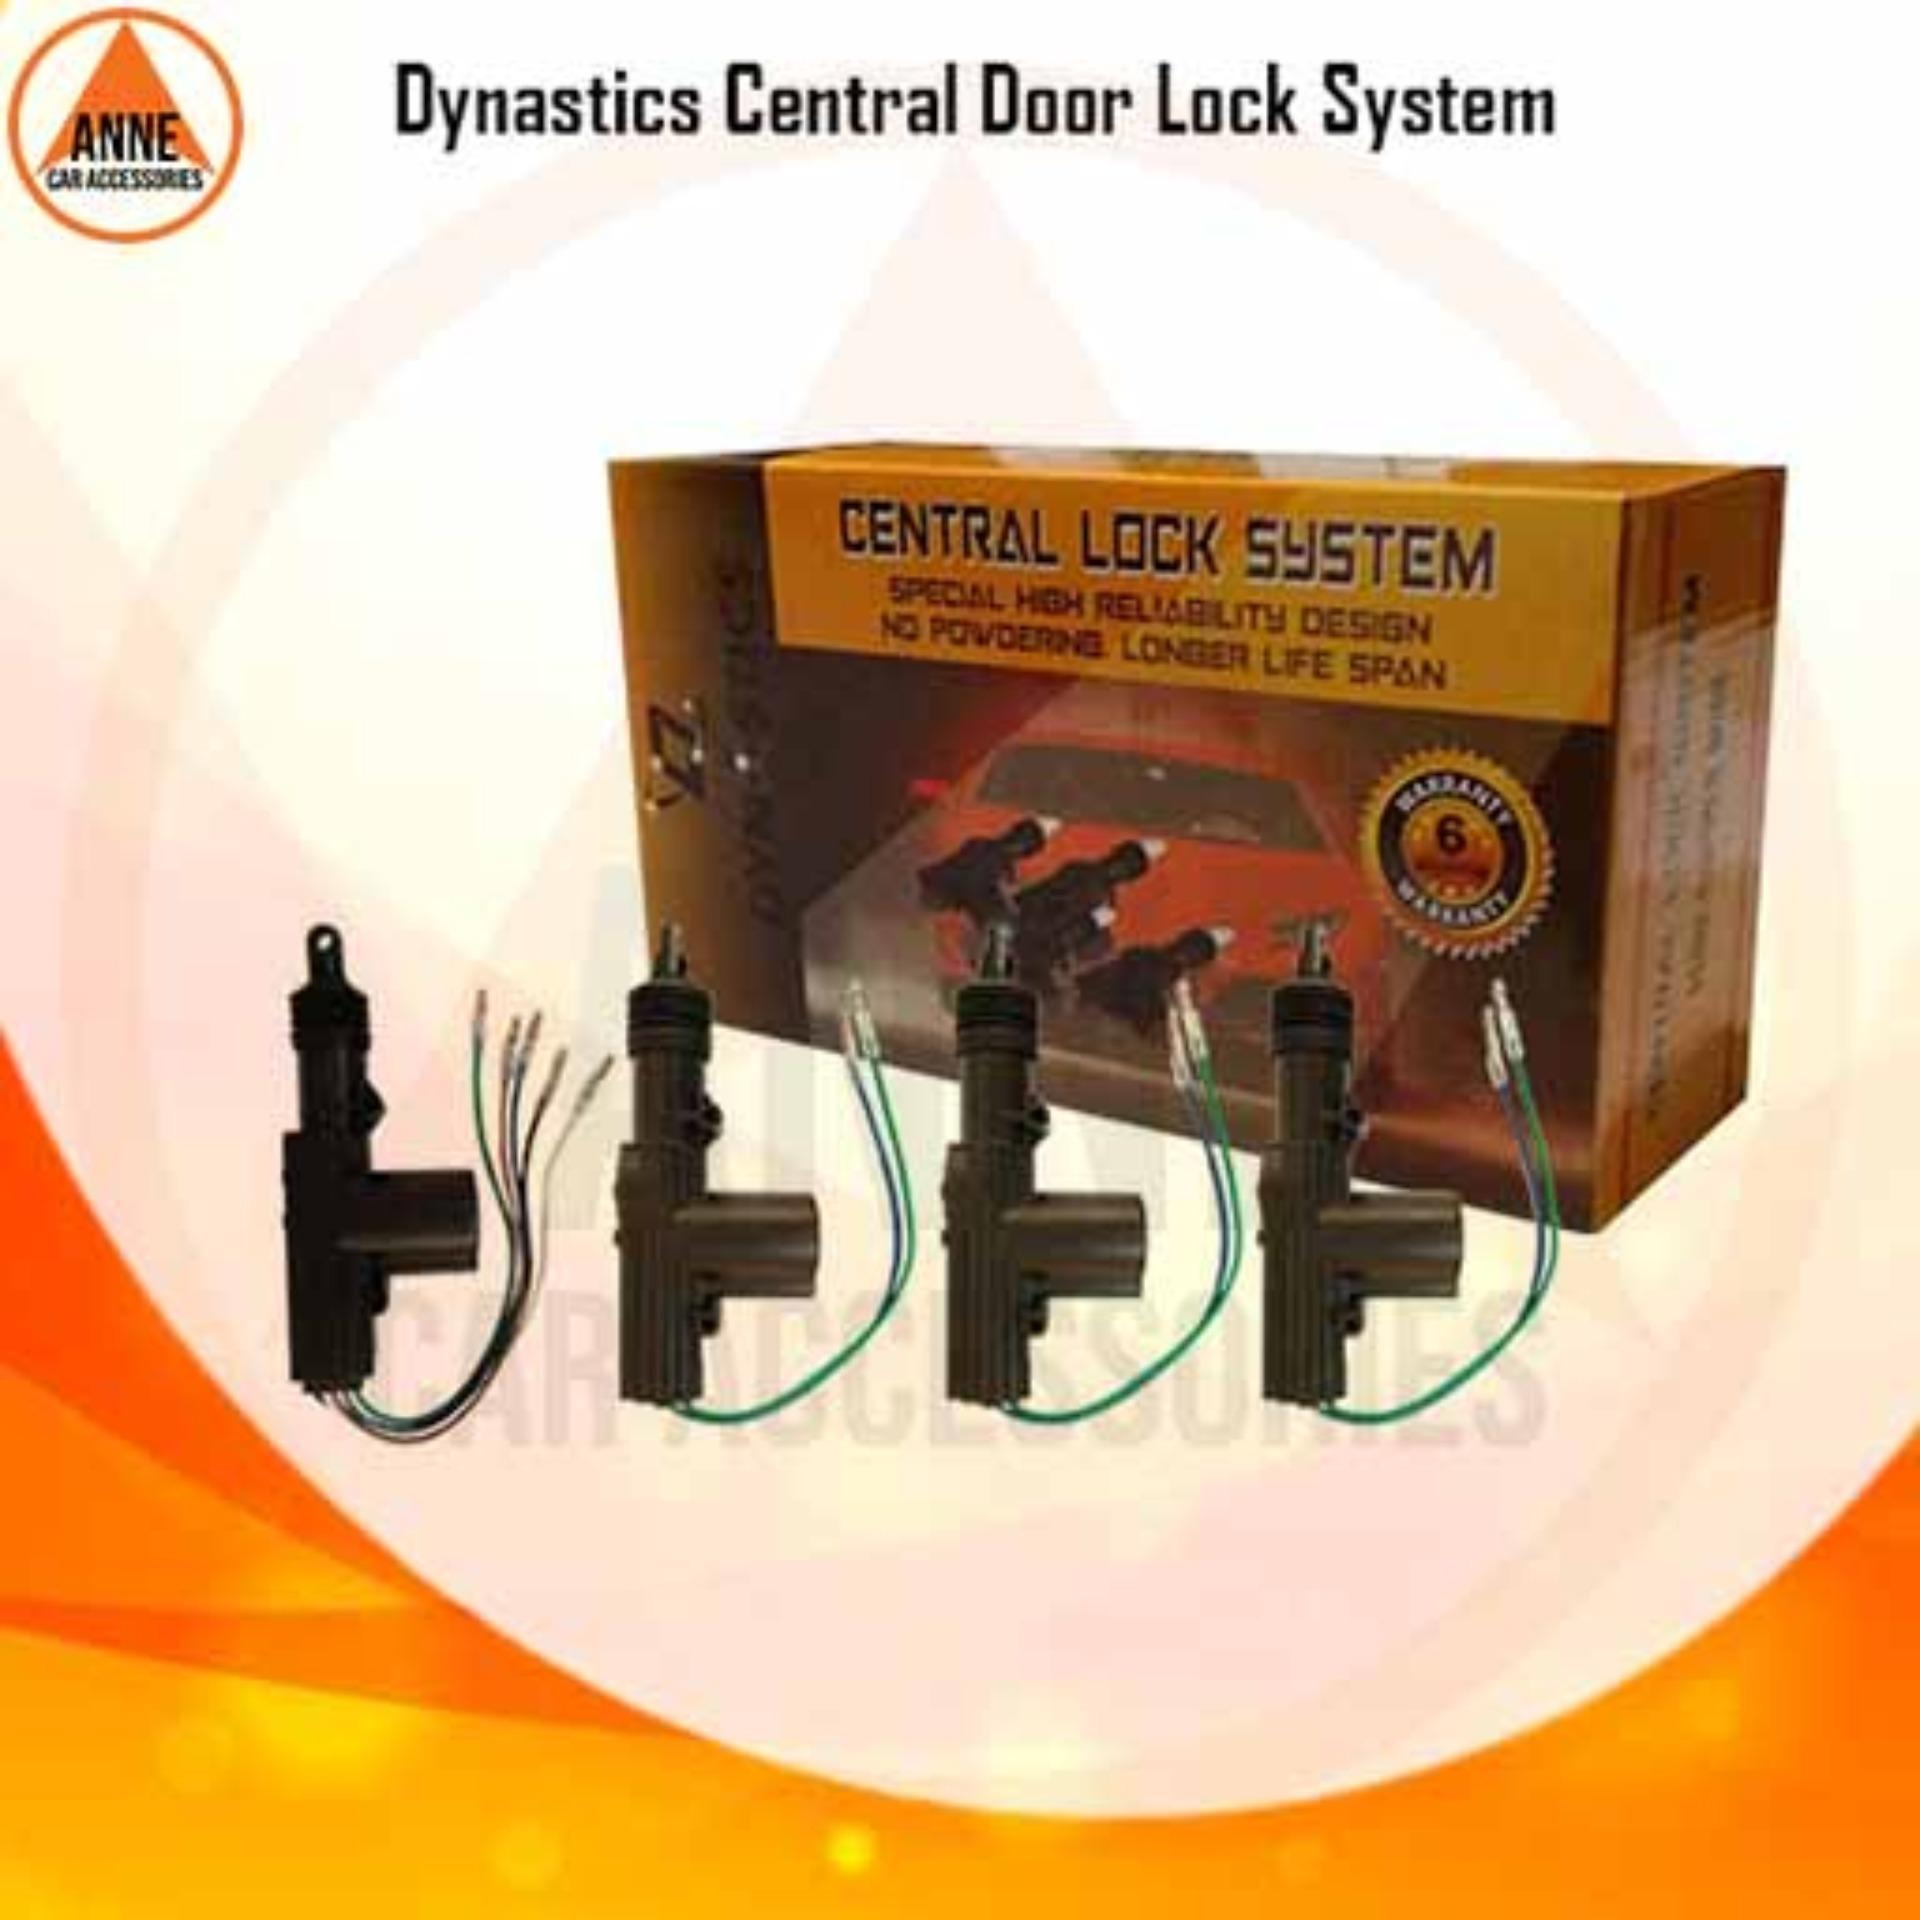 Keyless Entry For Sale Car Online Brands Prices Alto Wiring Diagram Diy Central Lock Installation In My Maruti 800 Dynastics 360 Heavy Duty Auto Key Less Door System Universal